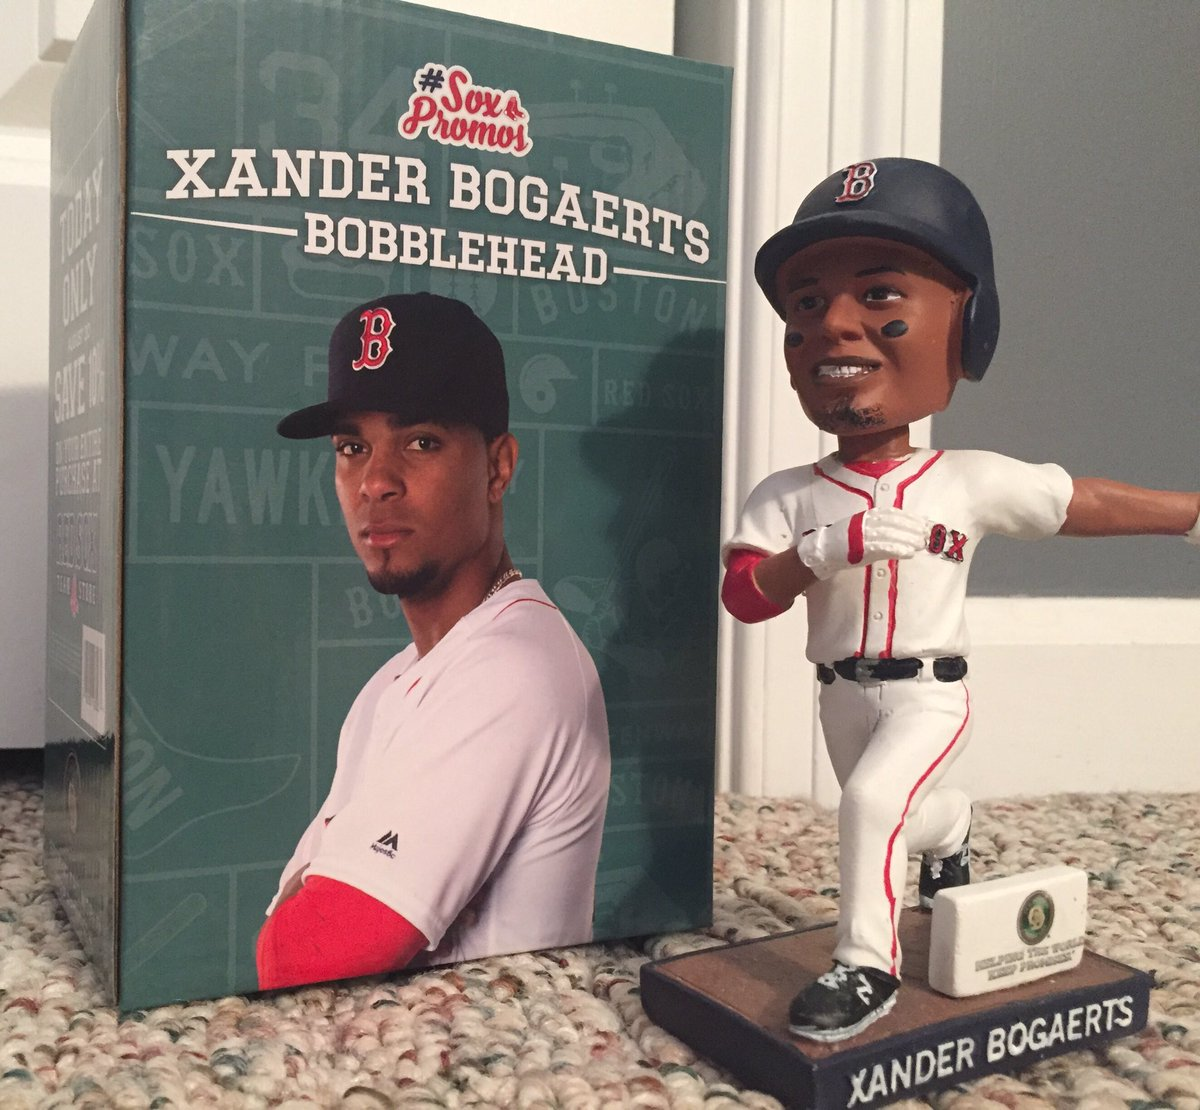 This is my Xander Bogaerts bobblehead and after Friday night's game I'm giving it to a random follower who RTs this. https://t.co/jg1xq1NP42